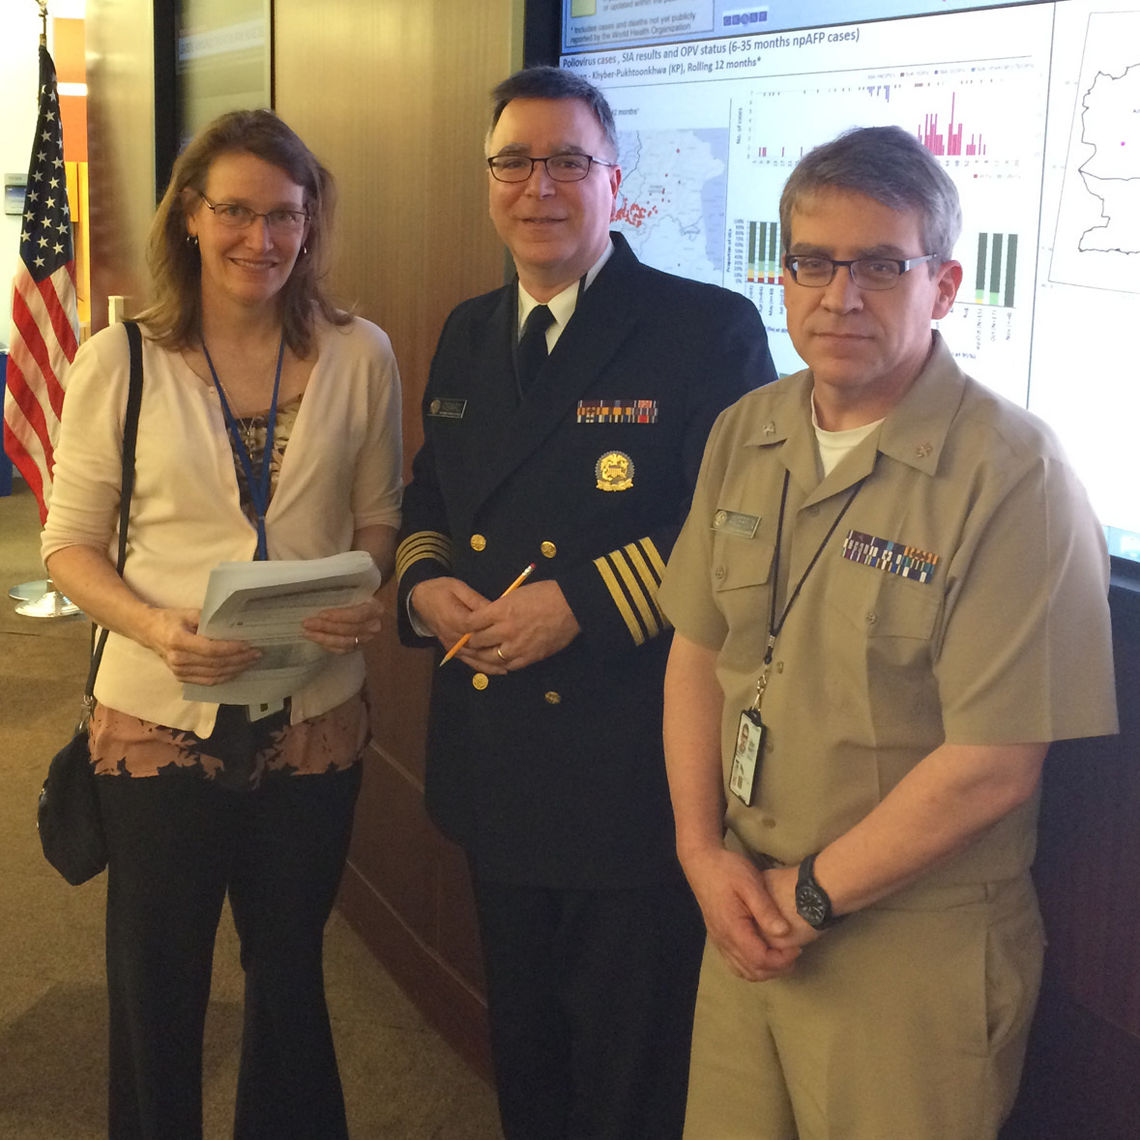 From left, Barbara Marston '82, Michael Iademarco '82 and Mark Anderson '83 are key cogs in the CDC's response to the Ebola outbreak in West Africa. Iademarco and Anderson are wearing uniforms as officers of the U.S. Public Health Service.